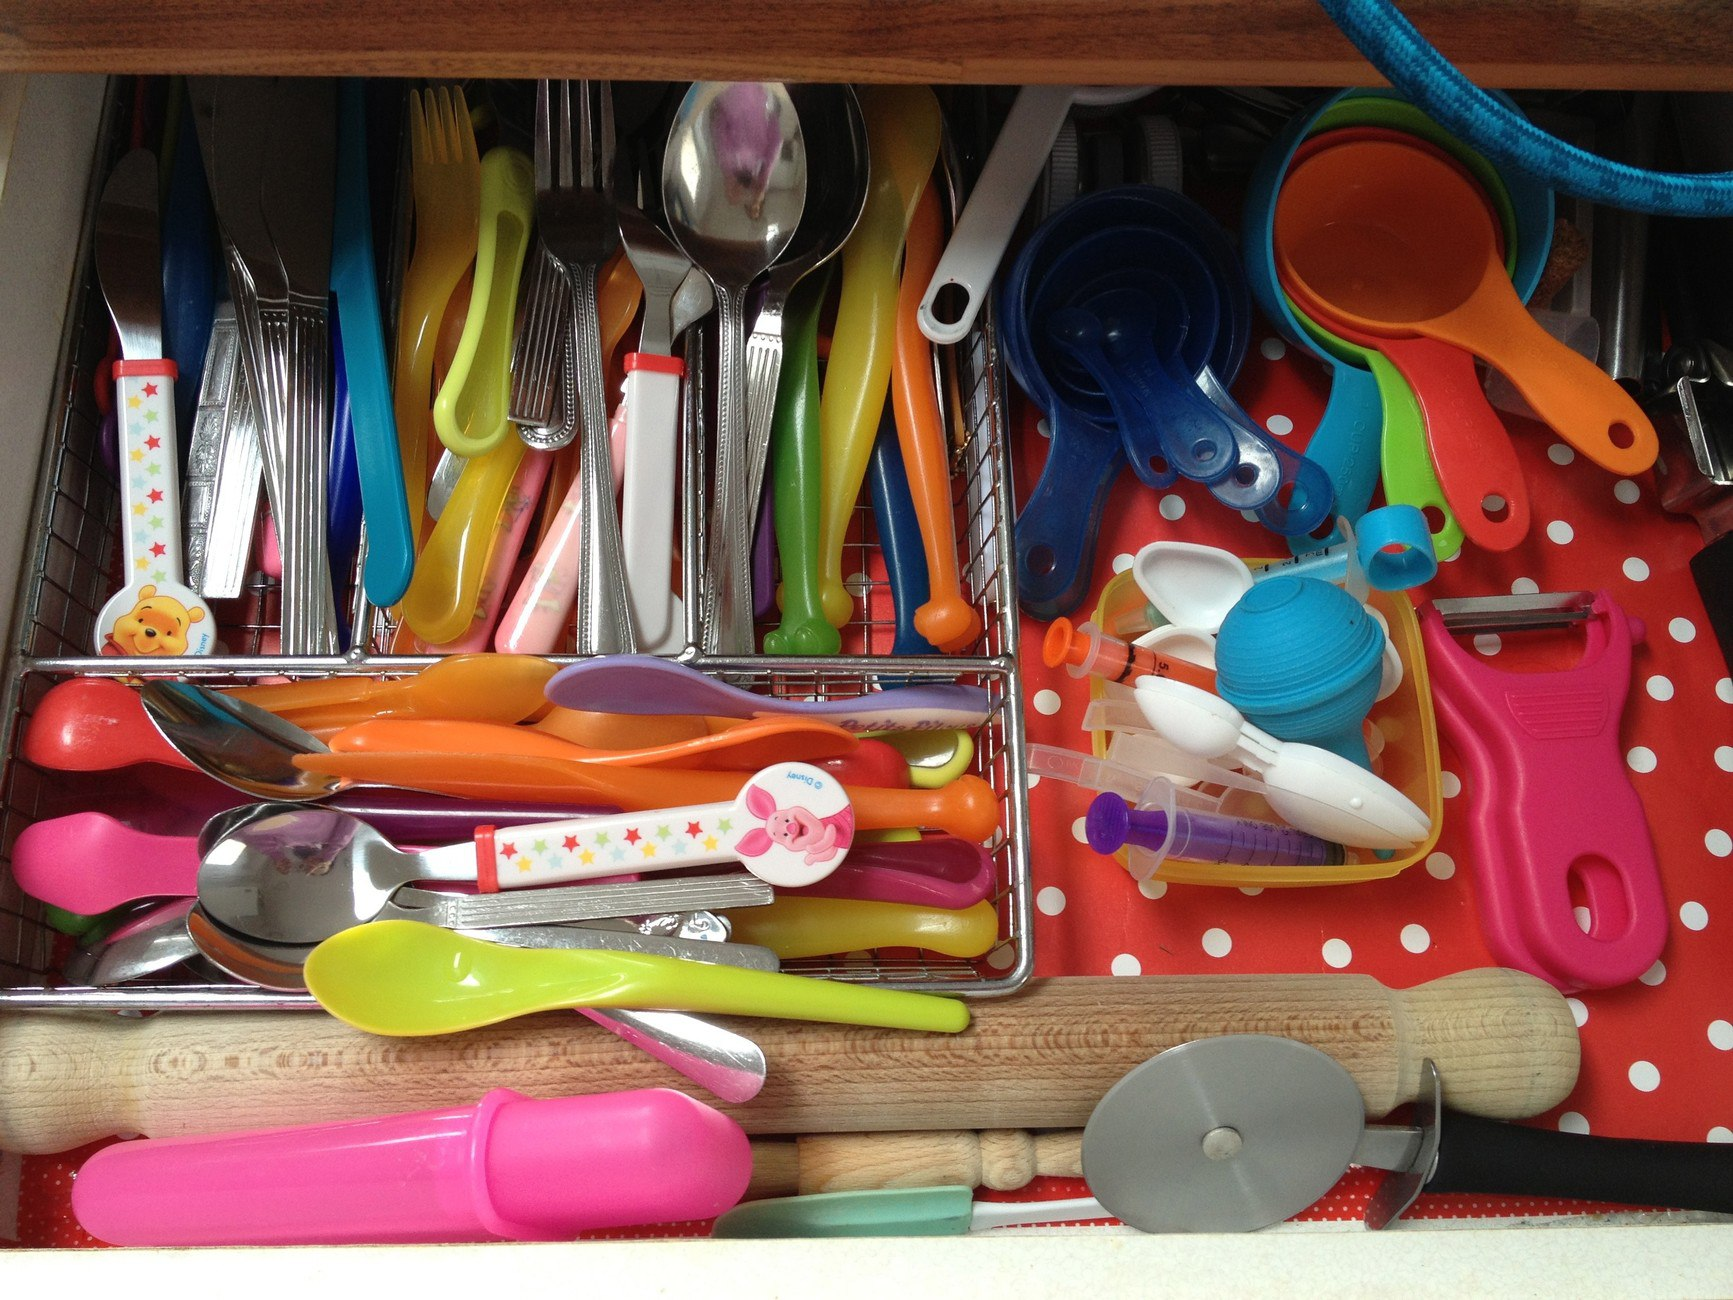 Organising the cutlery drawer